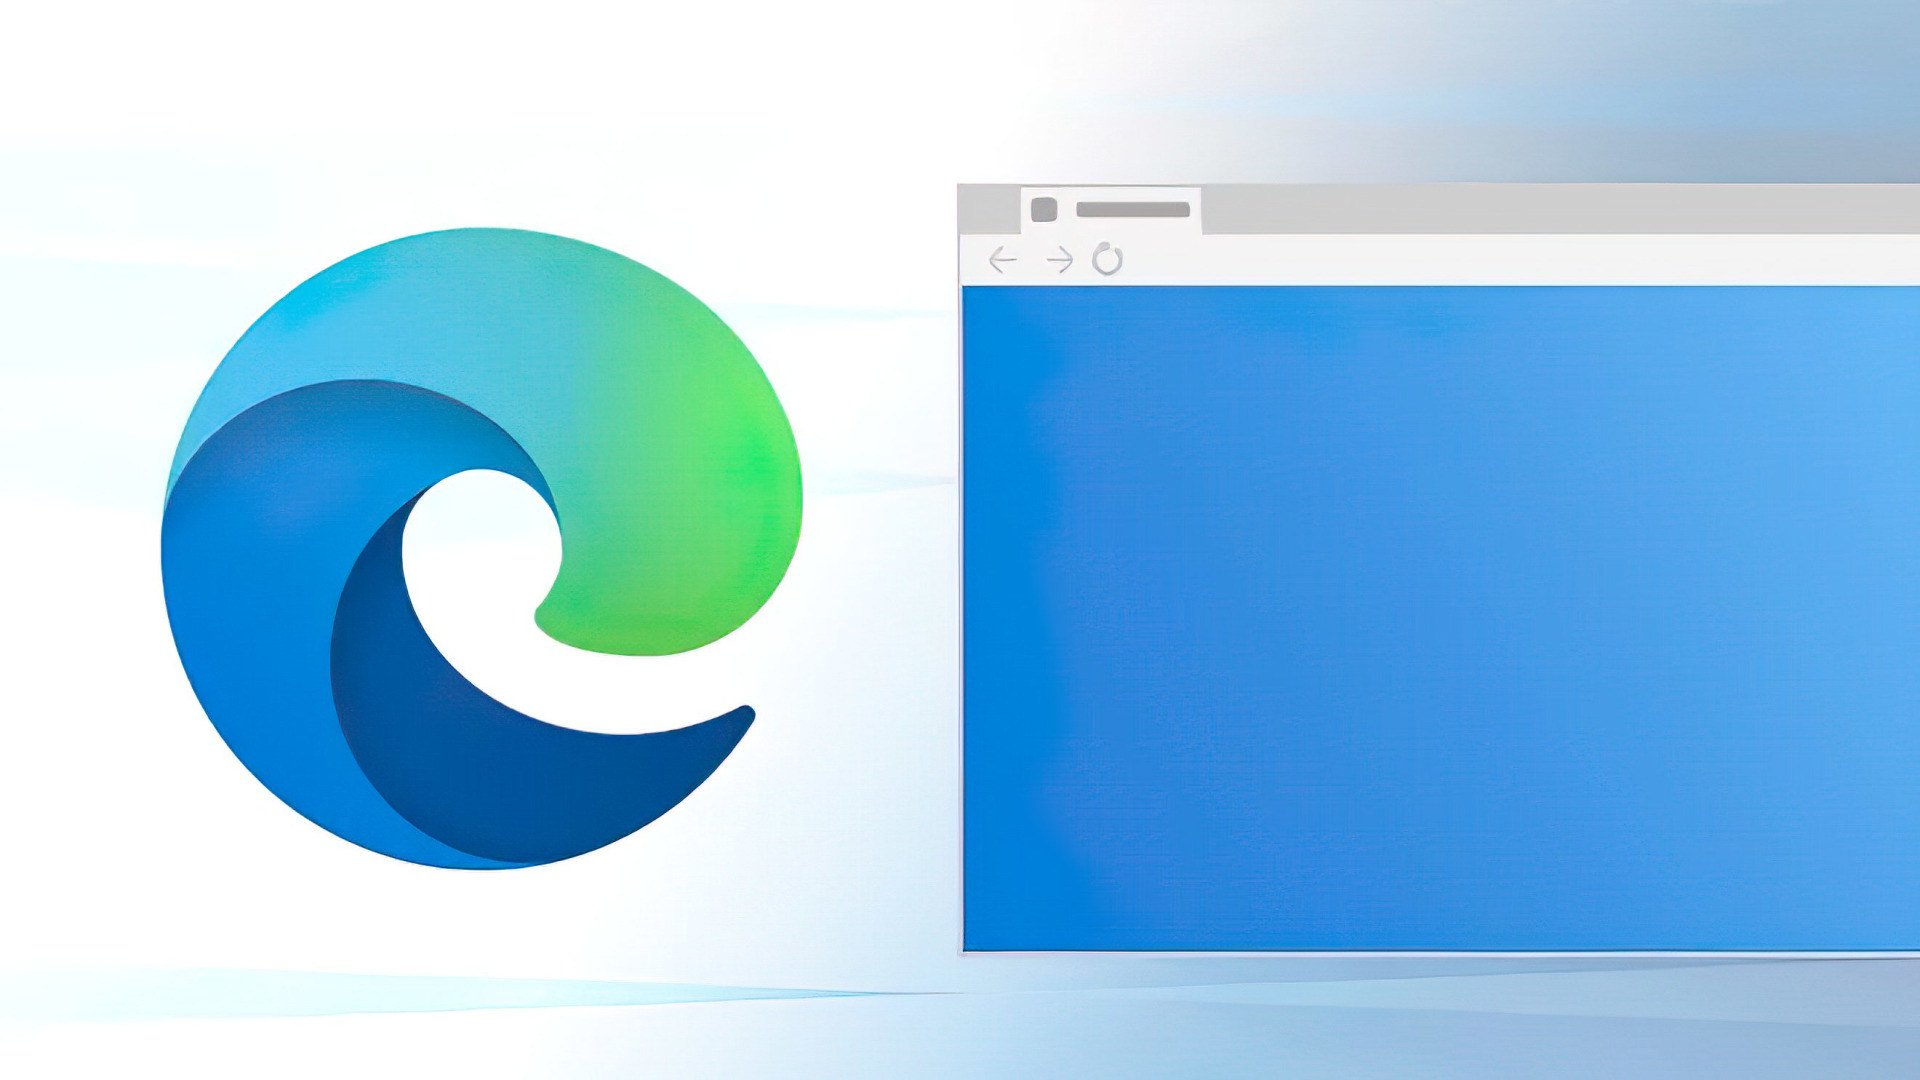 Microsoft, Browser, Logo, Edge, Microsoft Edge, Spartan Browser, project spartan, Spartan, Microsoft Spartan, Microsoft Browser, Edge Chromium, Edge Browser, Projekt Spartan, Microsoft Edge Insider, Chromium Edge, Edge Extension, Edge-Browser, Edge auf Chromium-Basis, Edge Logo